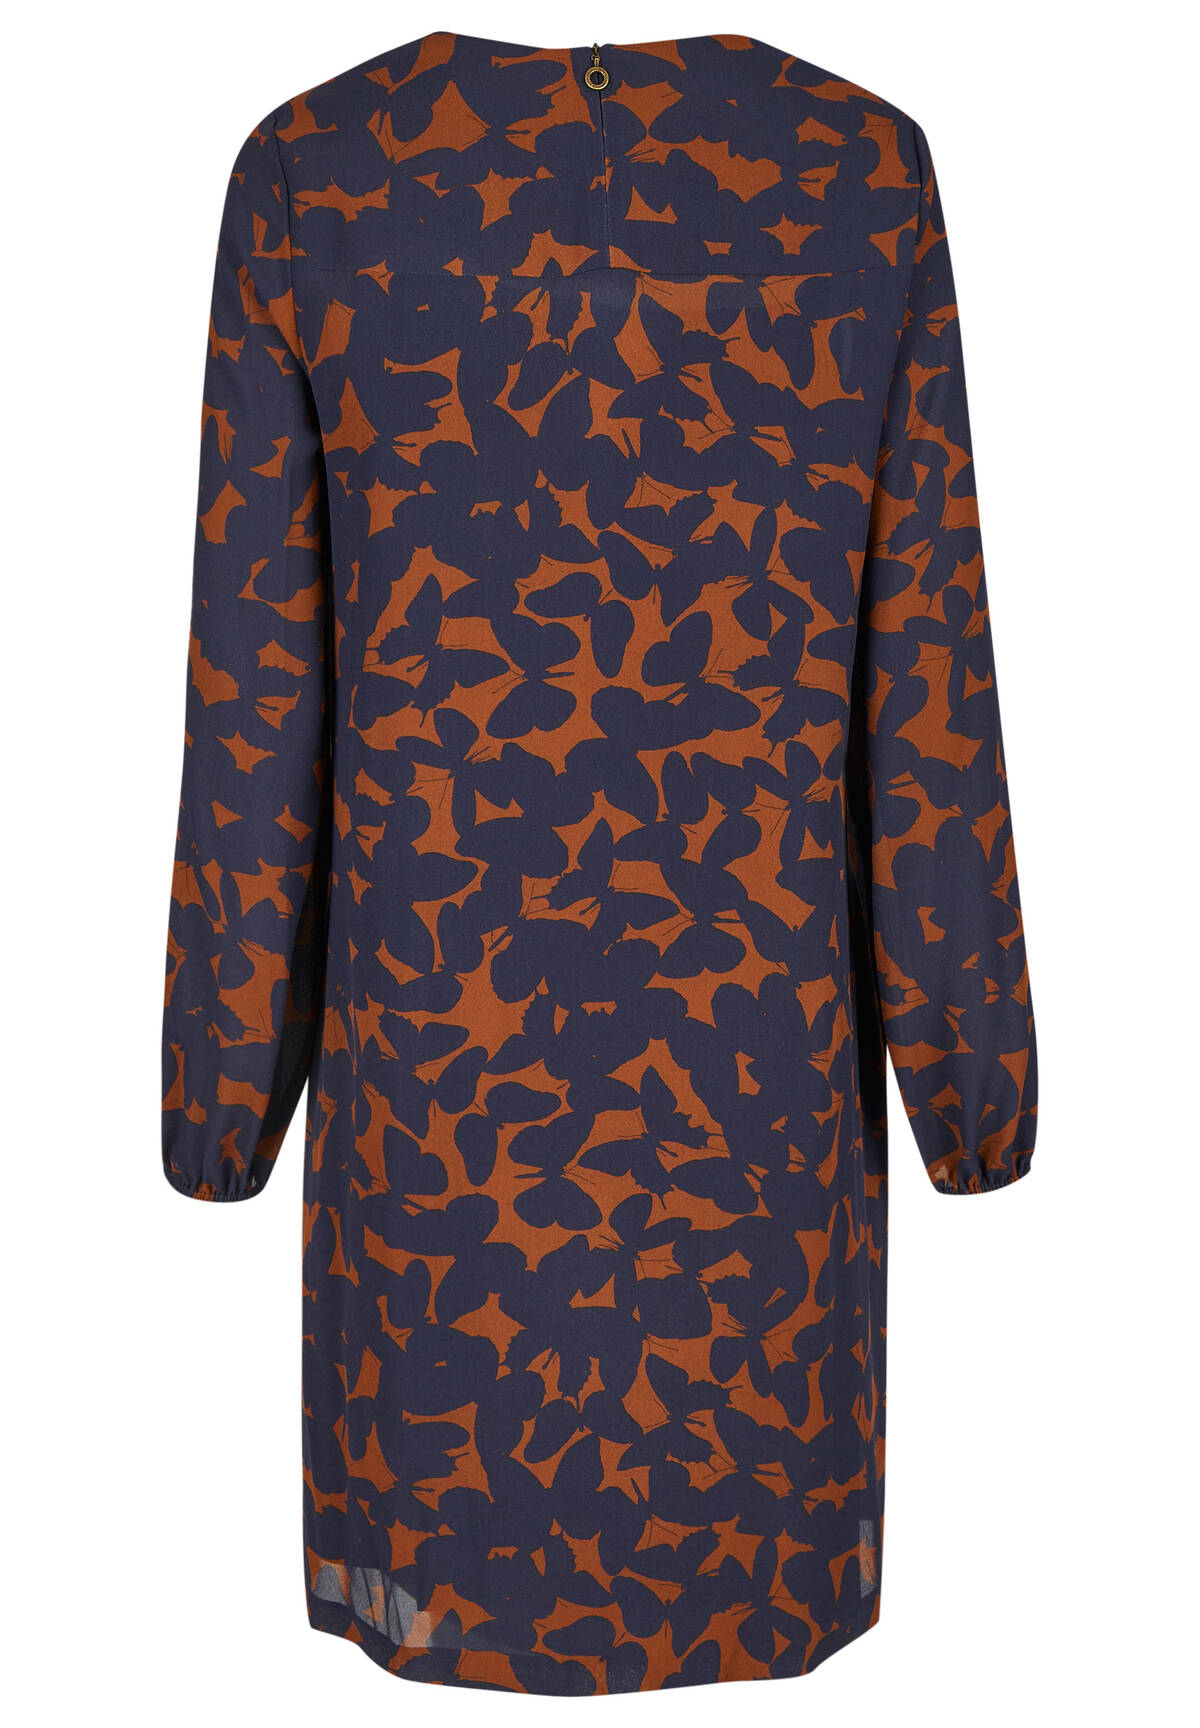 Modisches Kleid mit Print / Dress